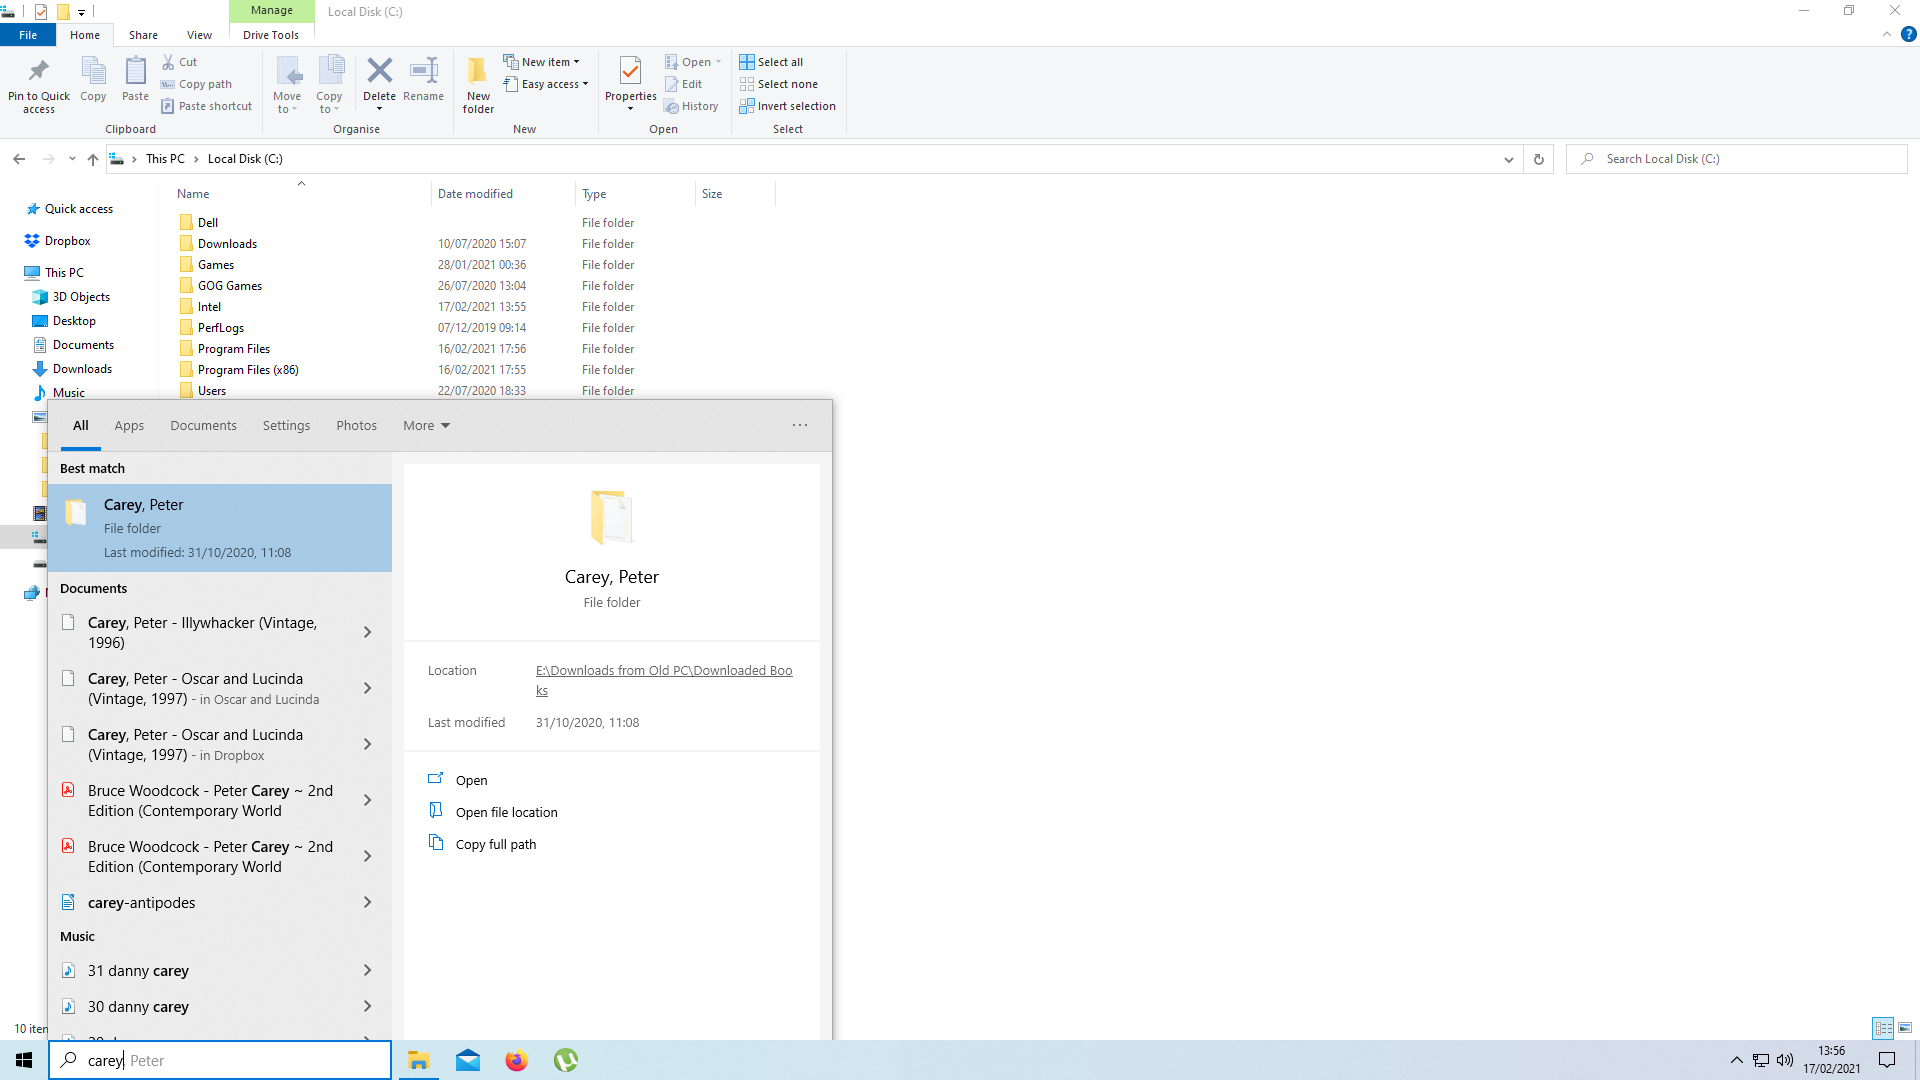 Icons disappearing in Windows 10 Search Box results after a while 07ec7c49-9390-4cb2-8dd1-34753d6671ae?upload=true.png